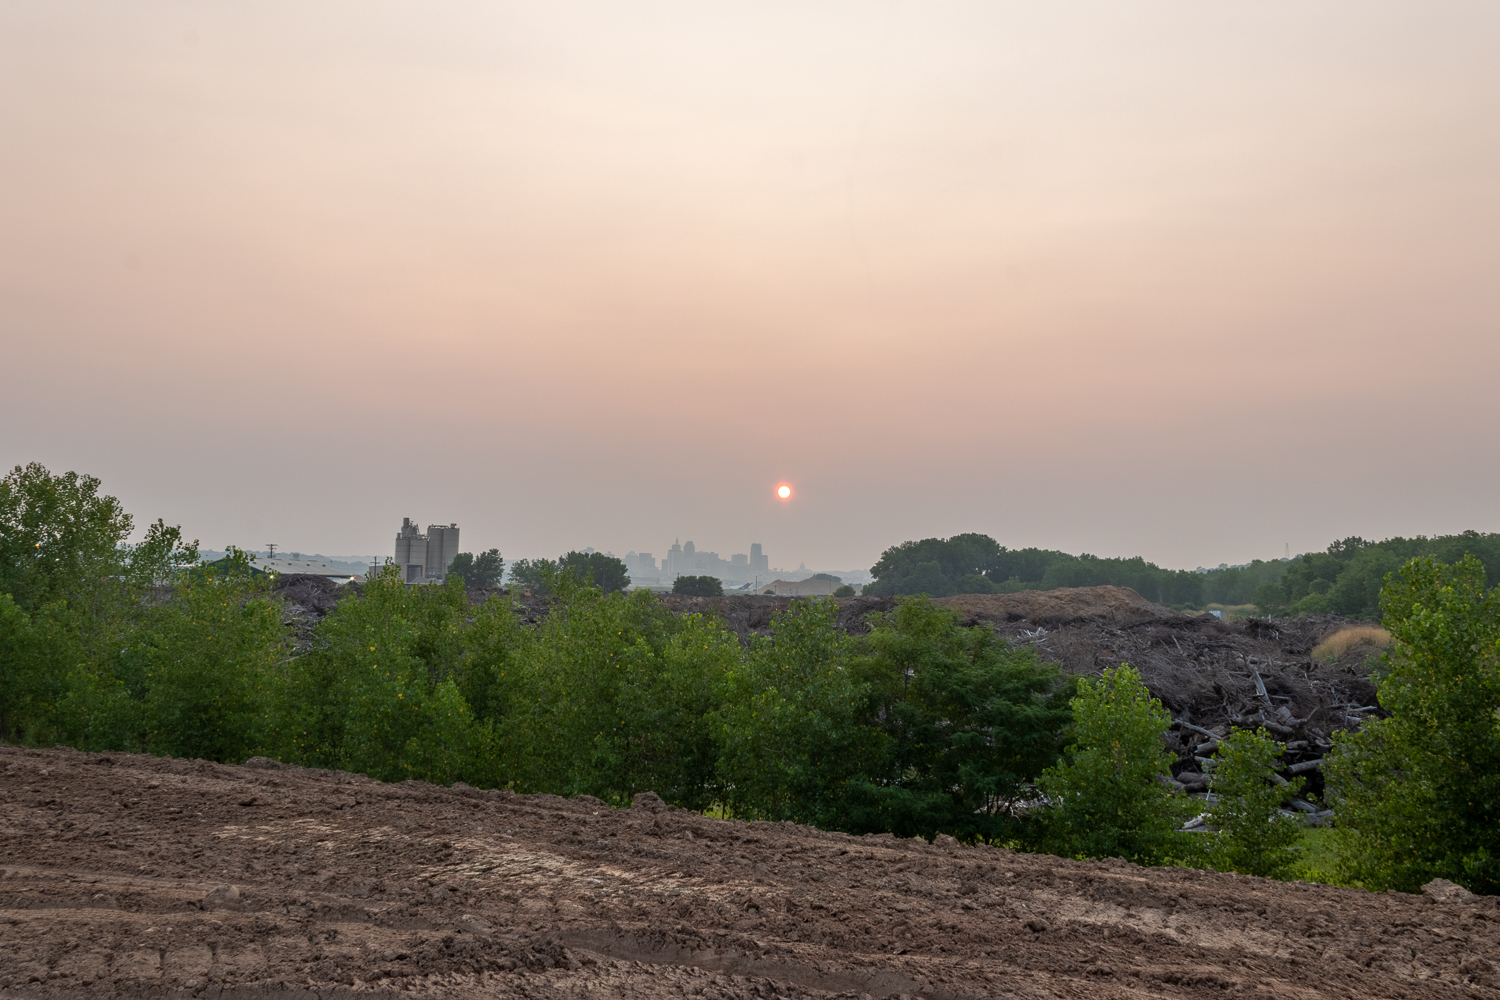 Sun sets over city skyline in hazy pink sky, behind brown dirt with tire tracks and line of green trees.